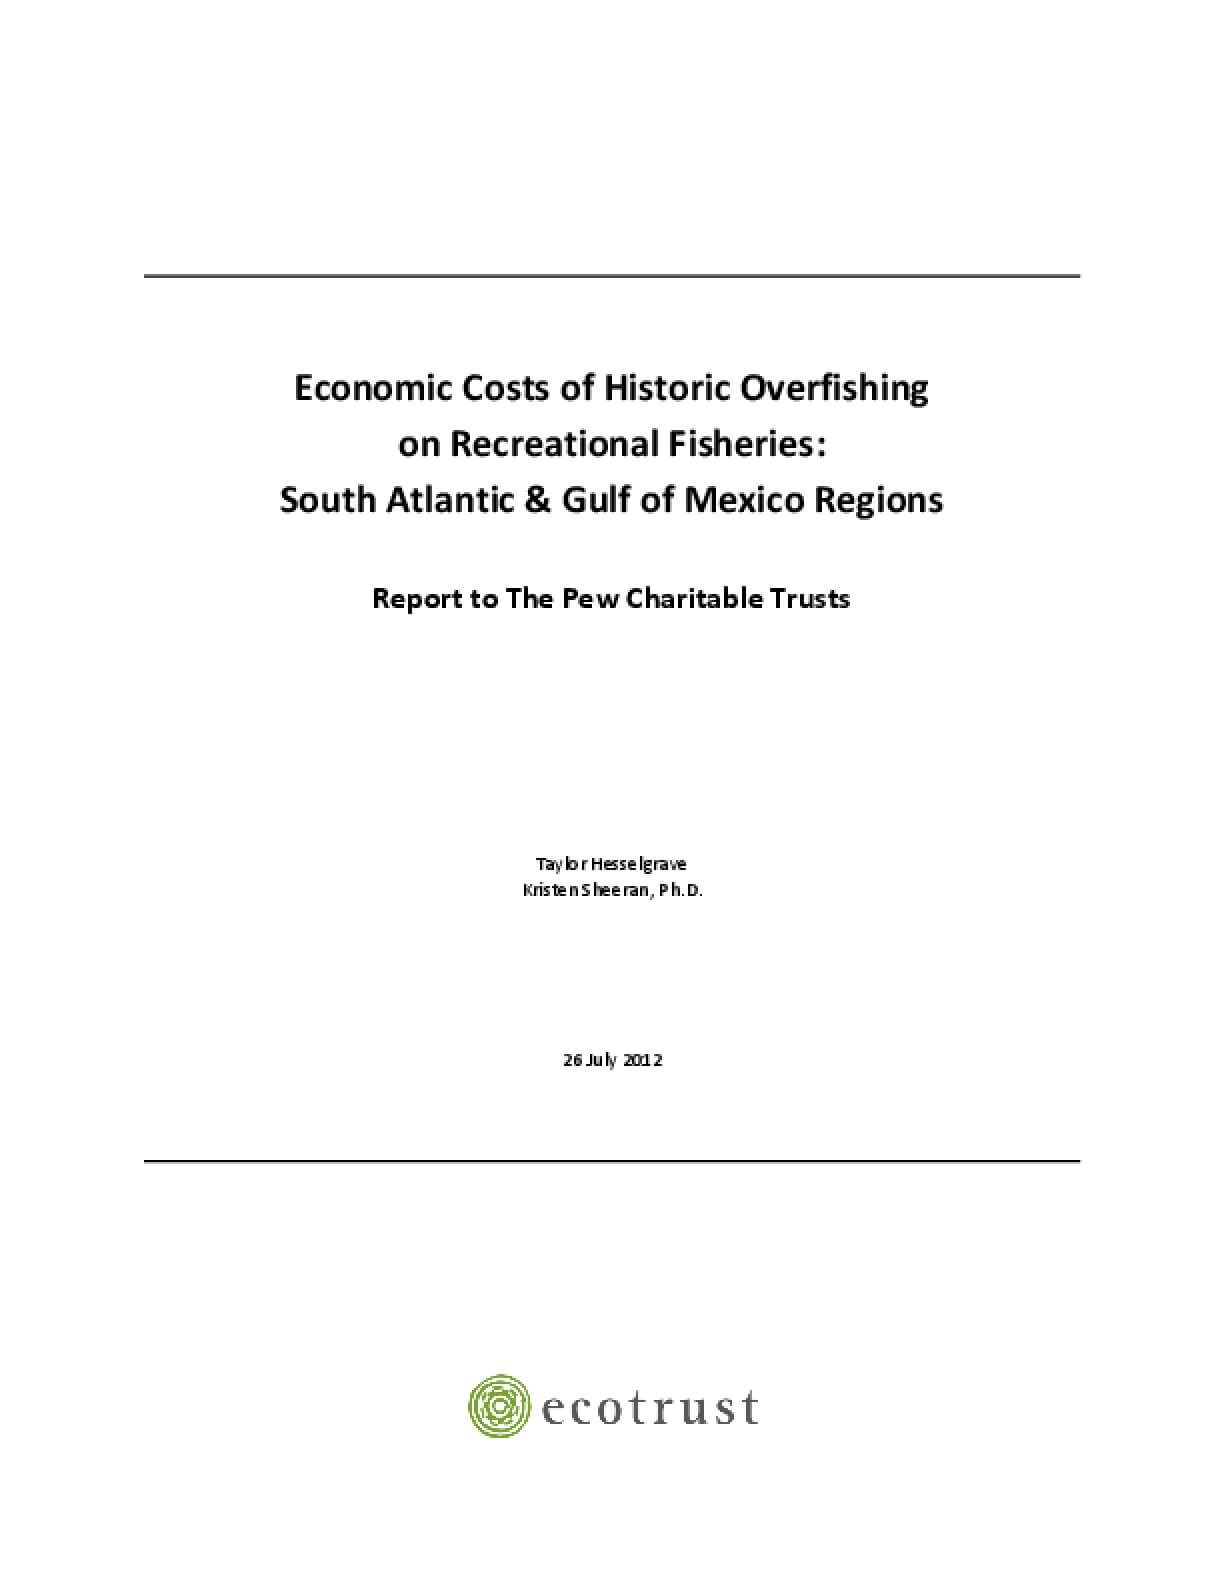 Economic Costs of Historic Overfishing on Recreational Fisheries: South Atlantic & Gulf of Mexico Regions